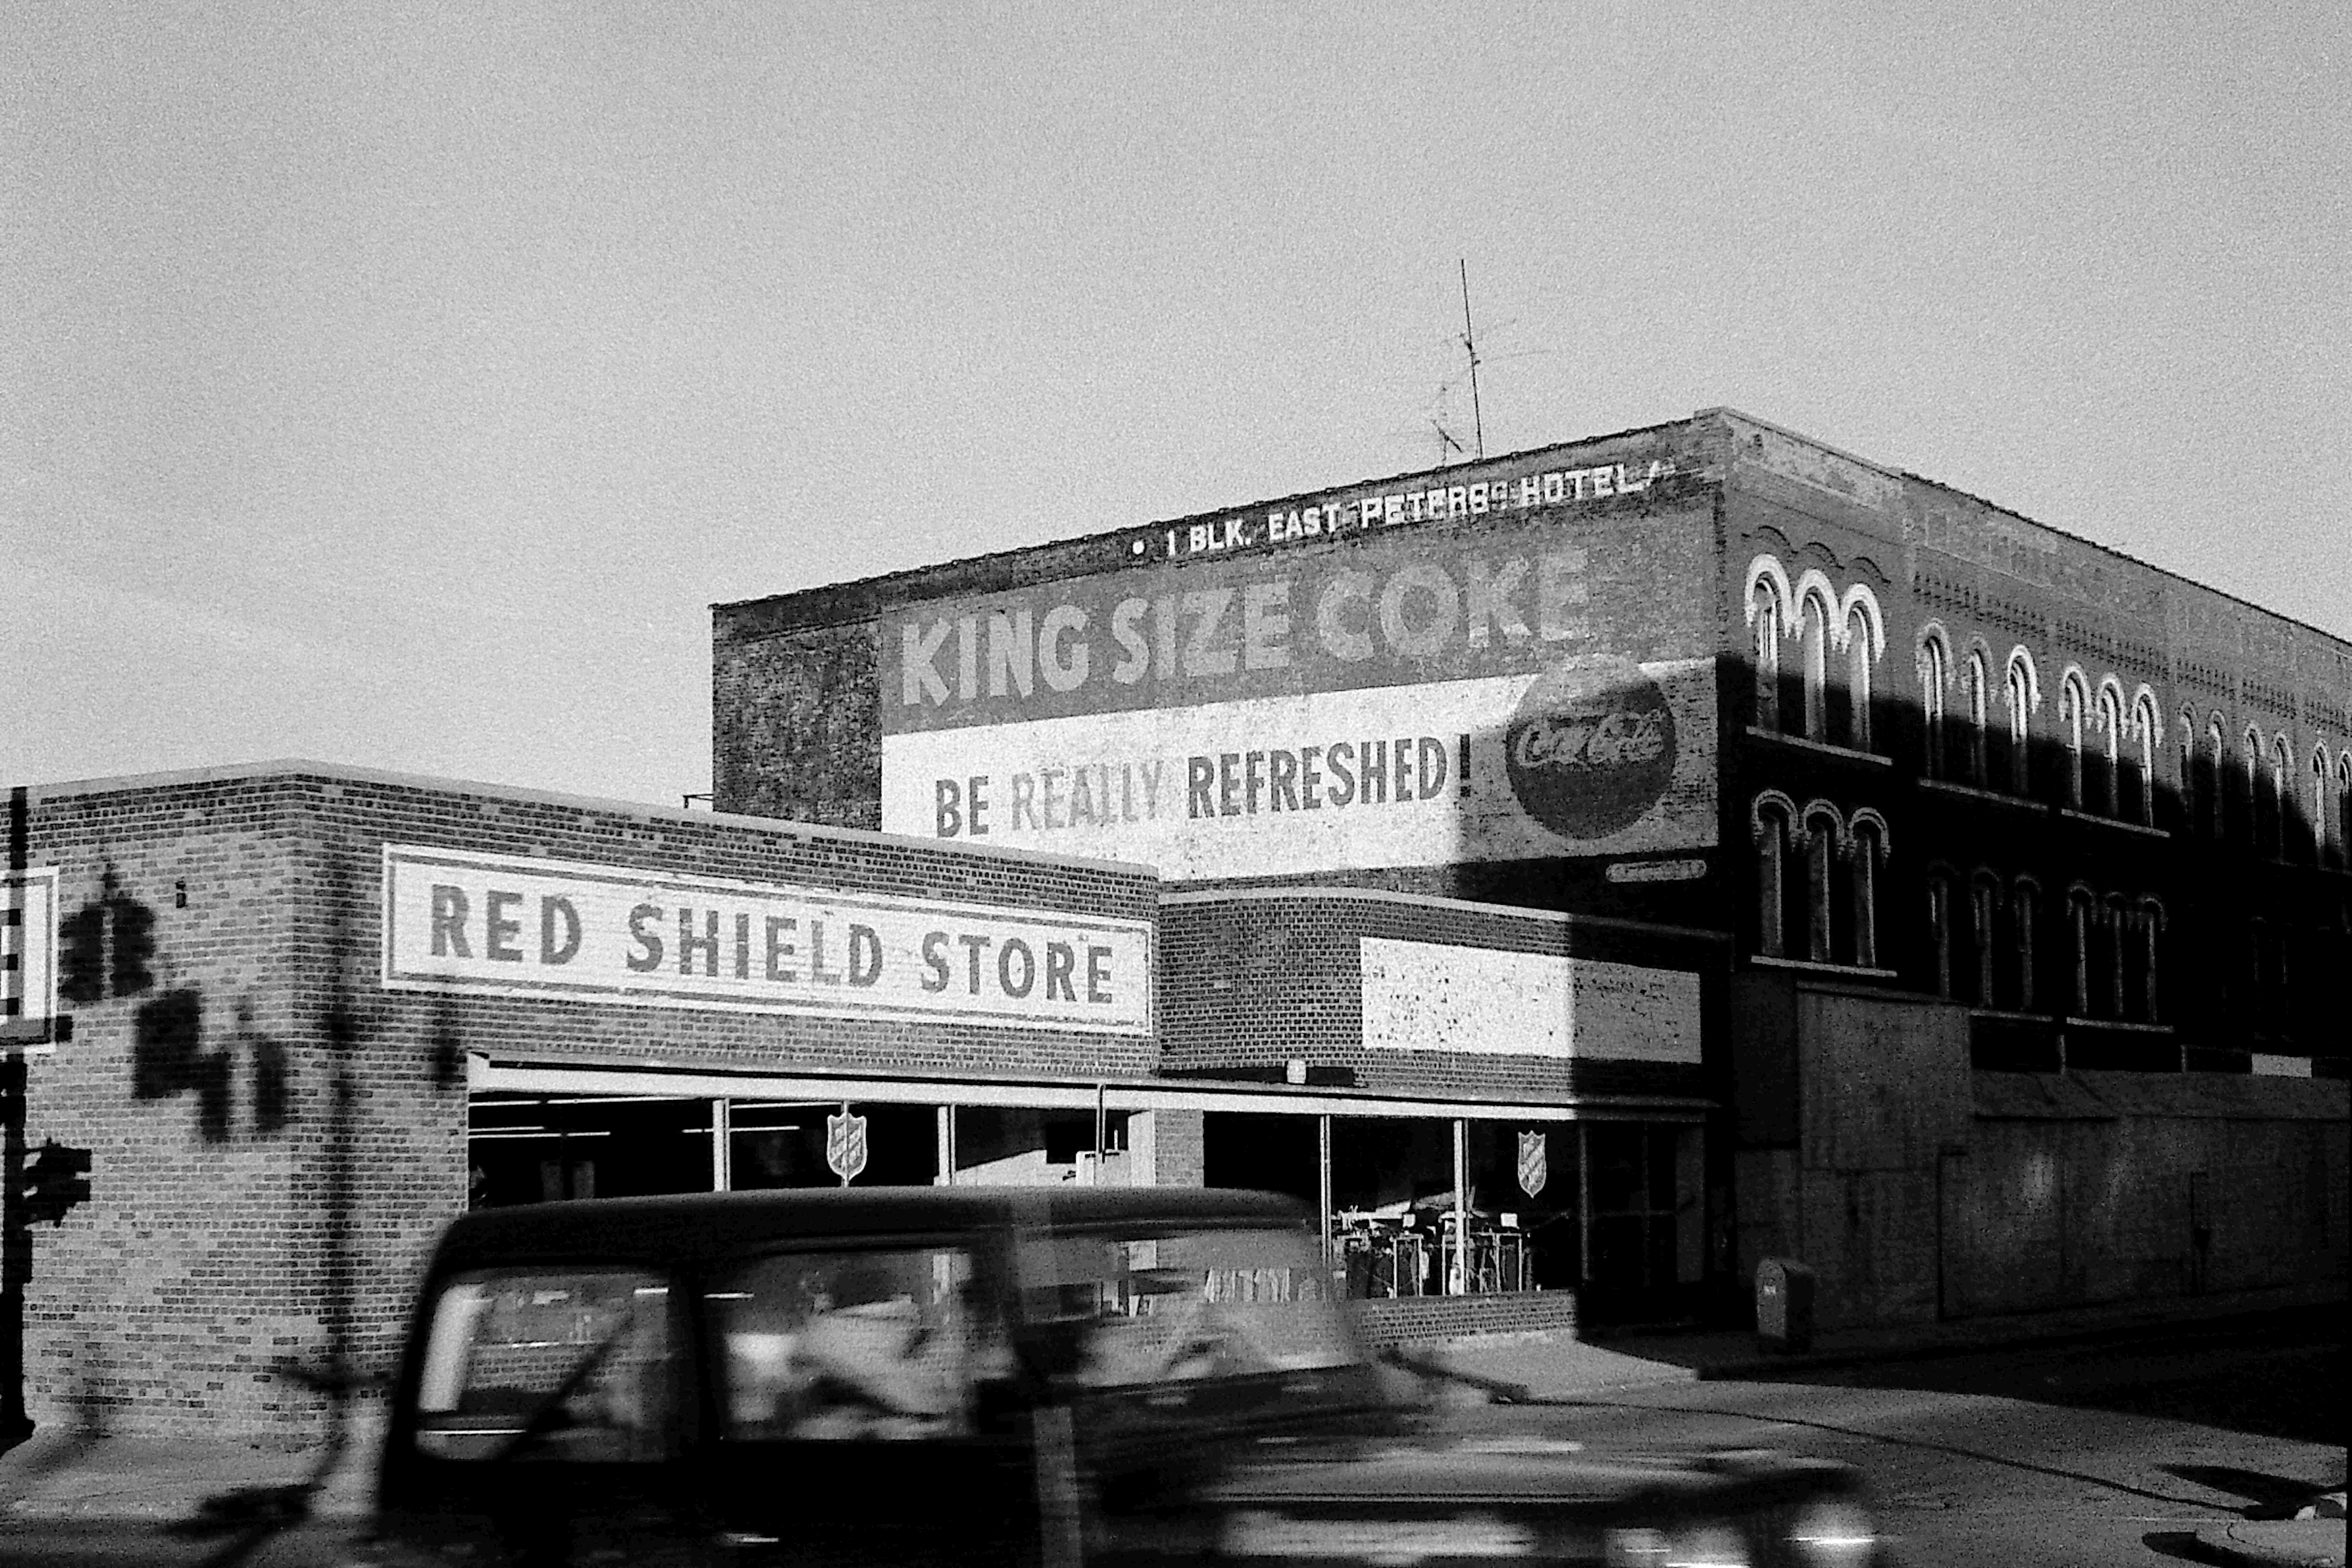 The Salvation Army Red Shield Store, 1977 image